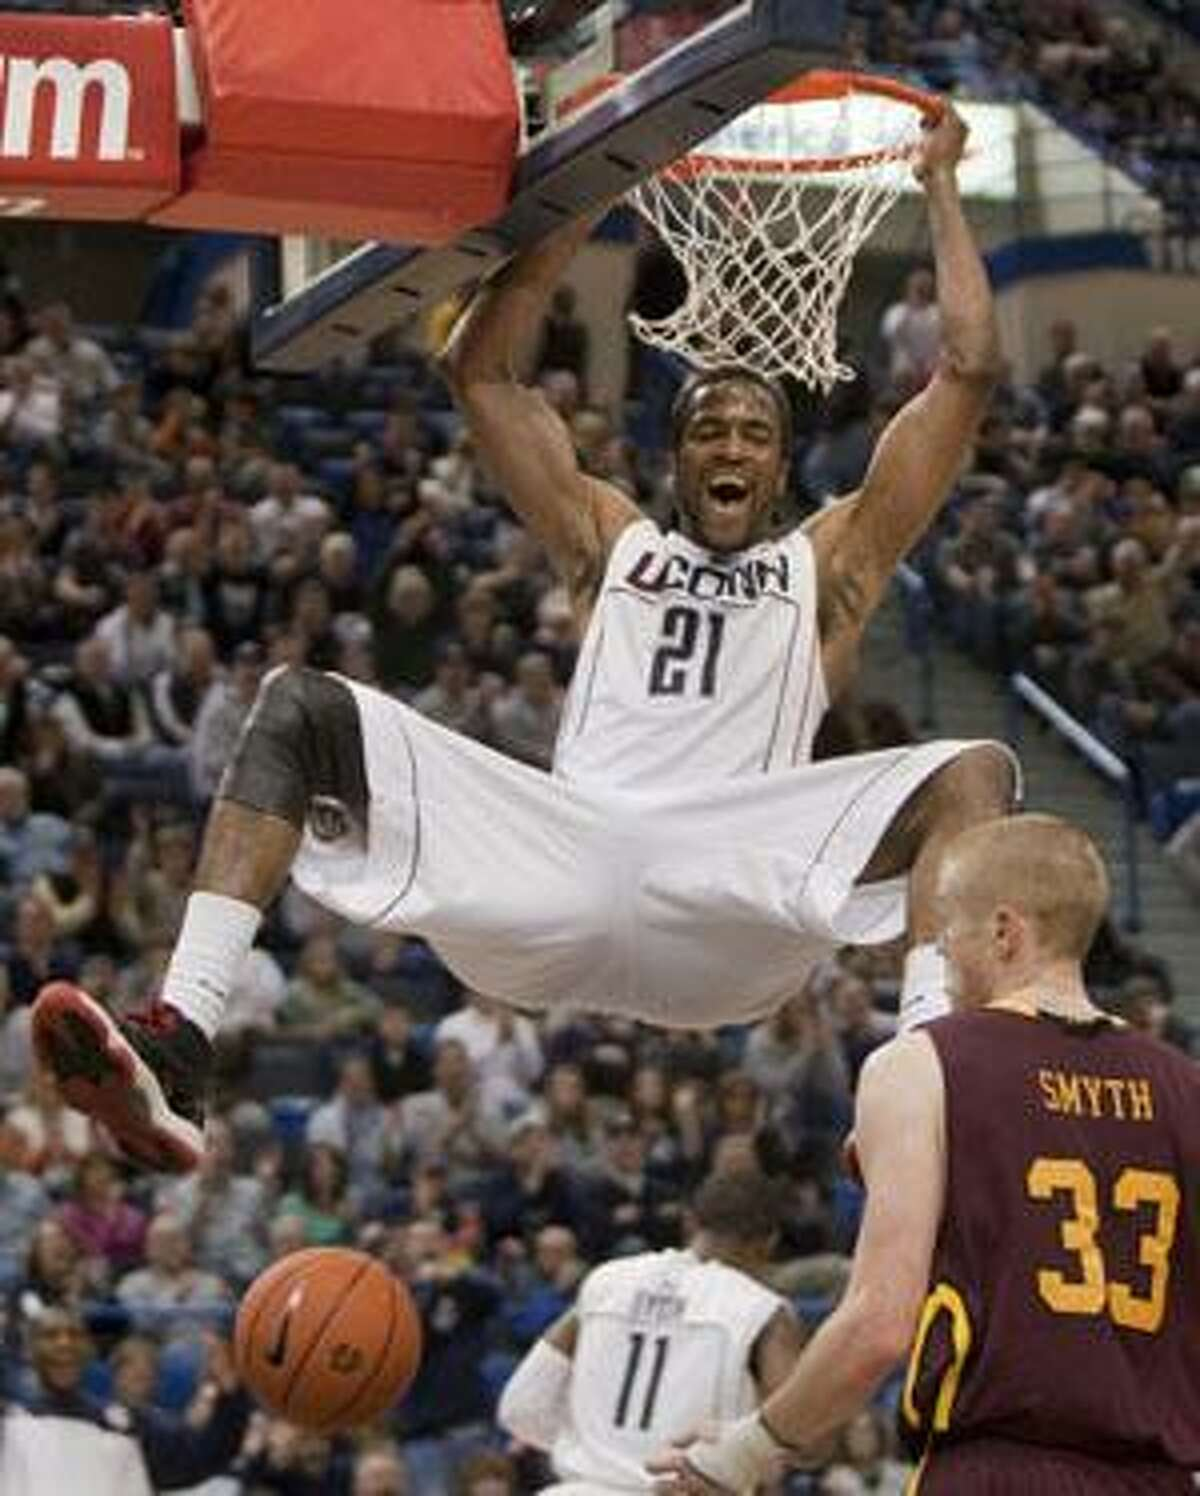 Connecticut's Stanley Robinson, top, dunks the ball while Iona's Kyle Smyth, right, looks on during the second half of Connecticut's 93-74 victory Sunday in Hartford.